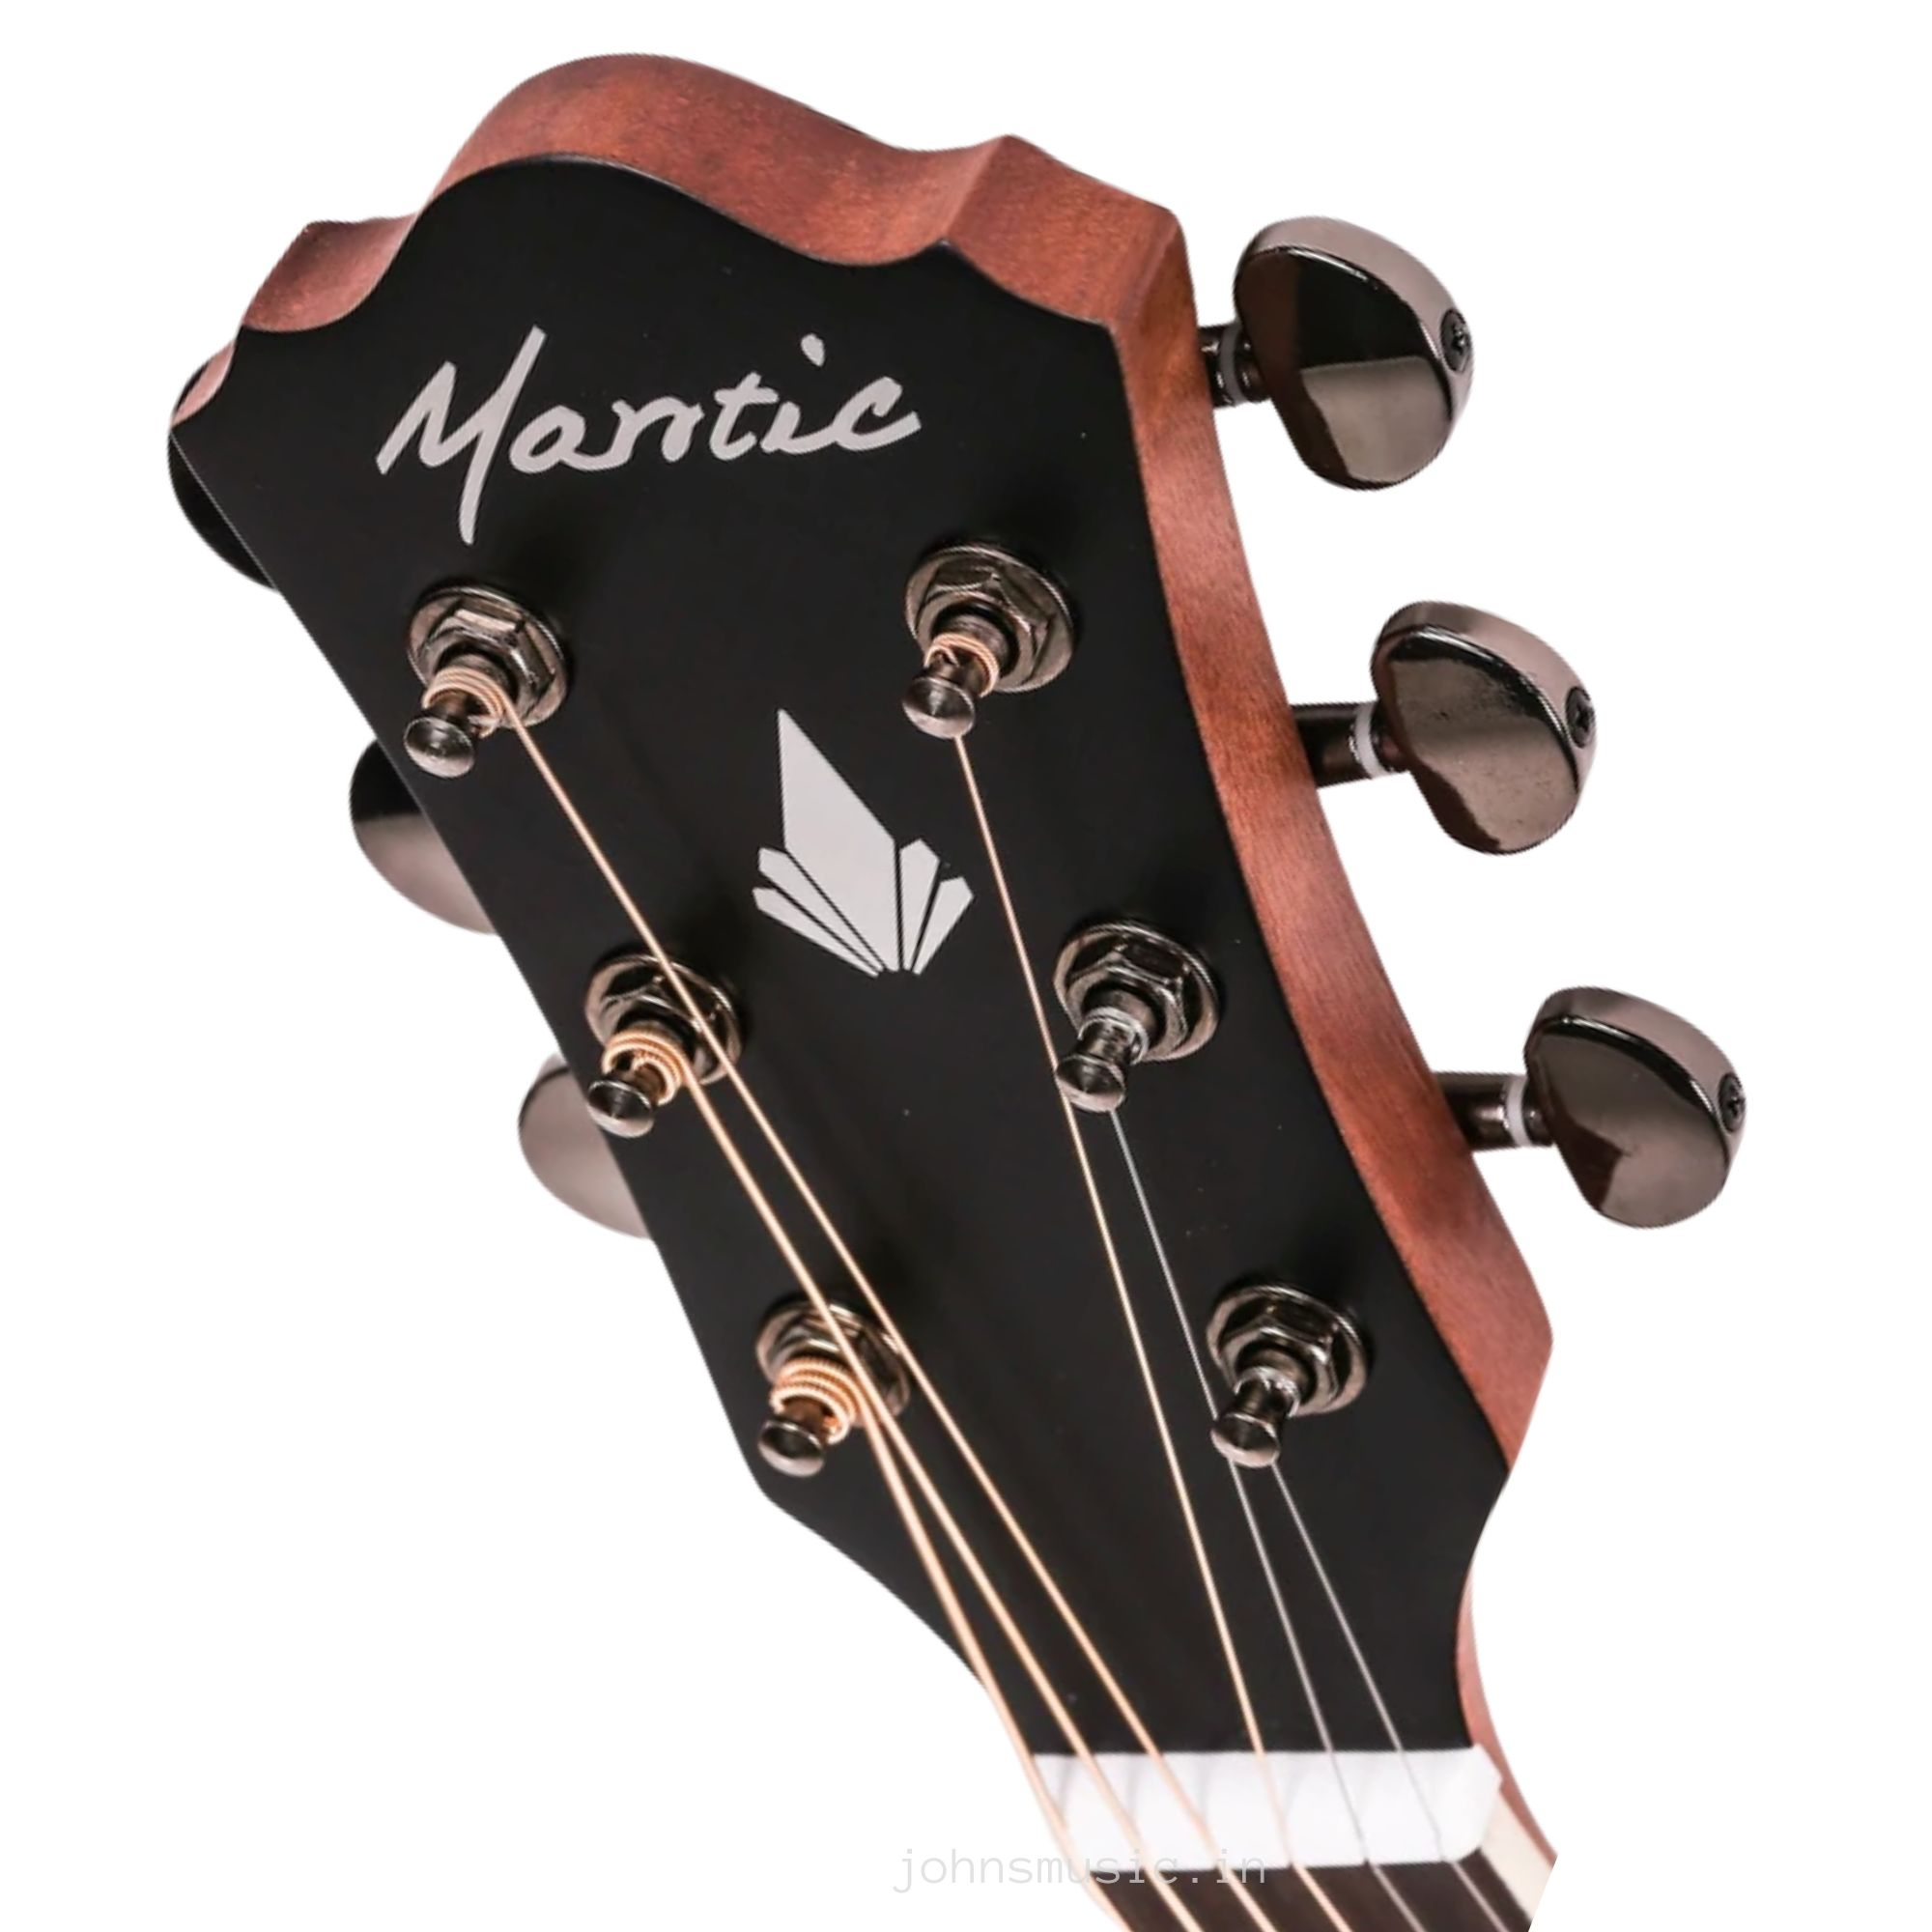 Mantic MG370c Acoustic Guitar - Concert Size